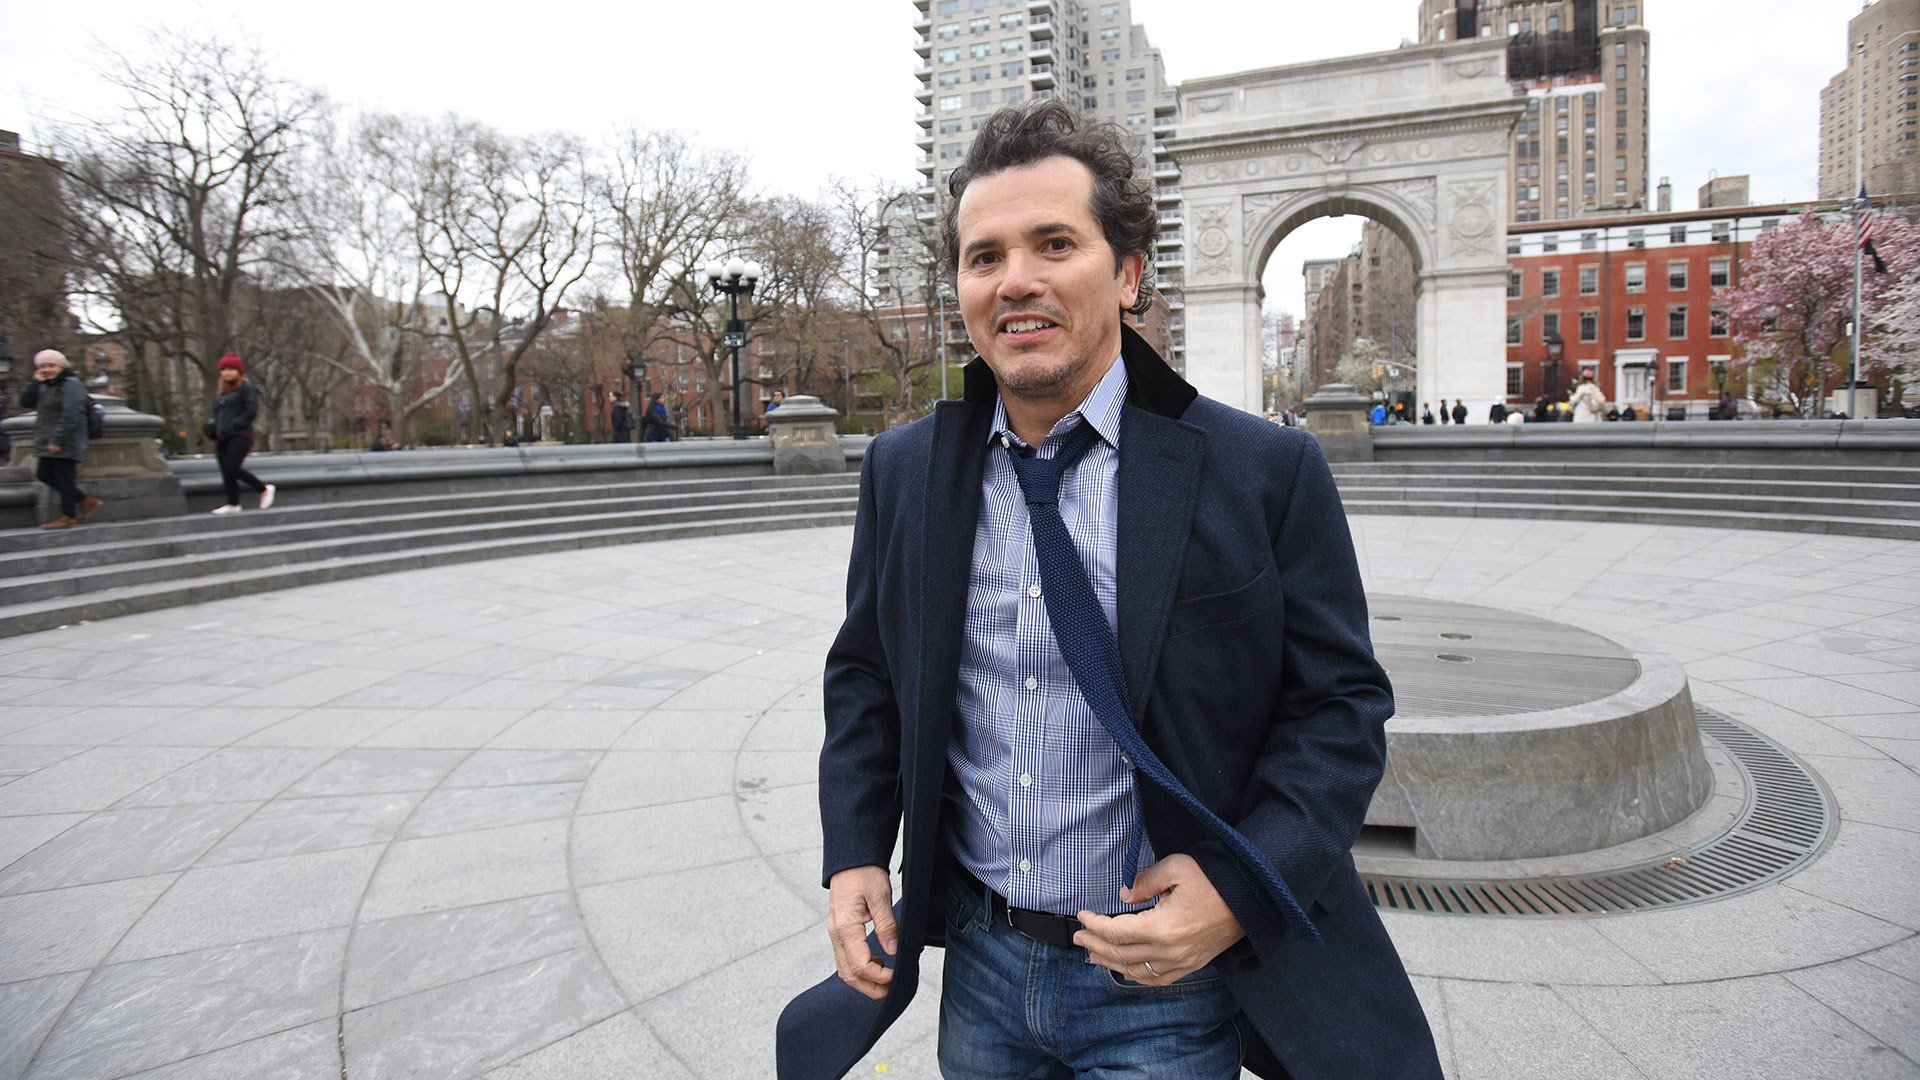 John Leguizamo Washington Square Park